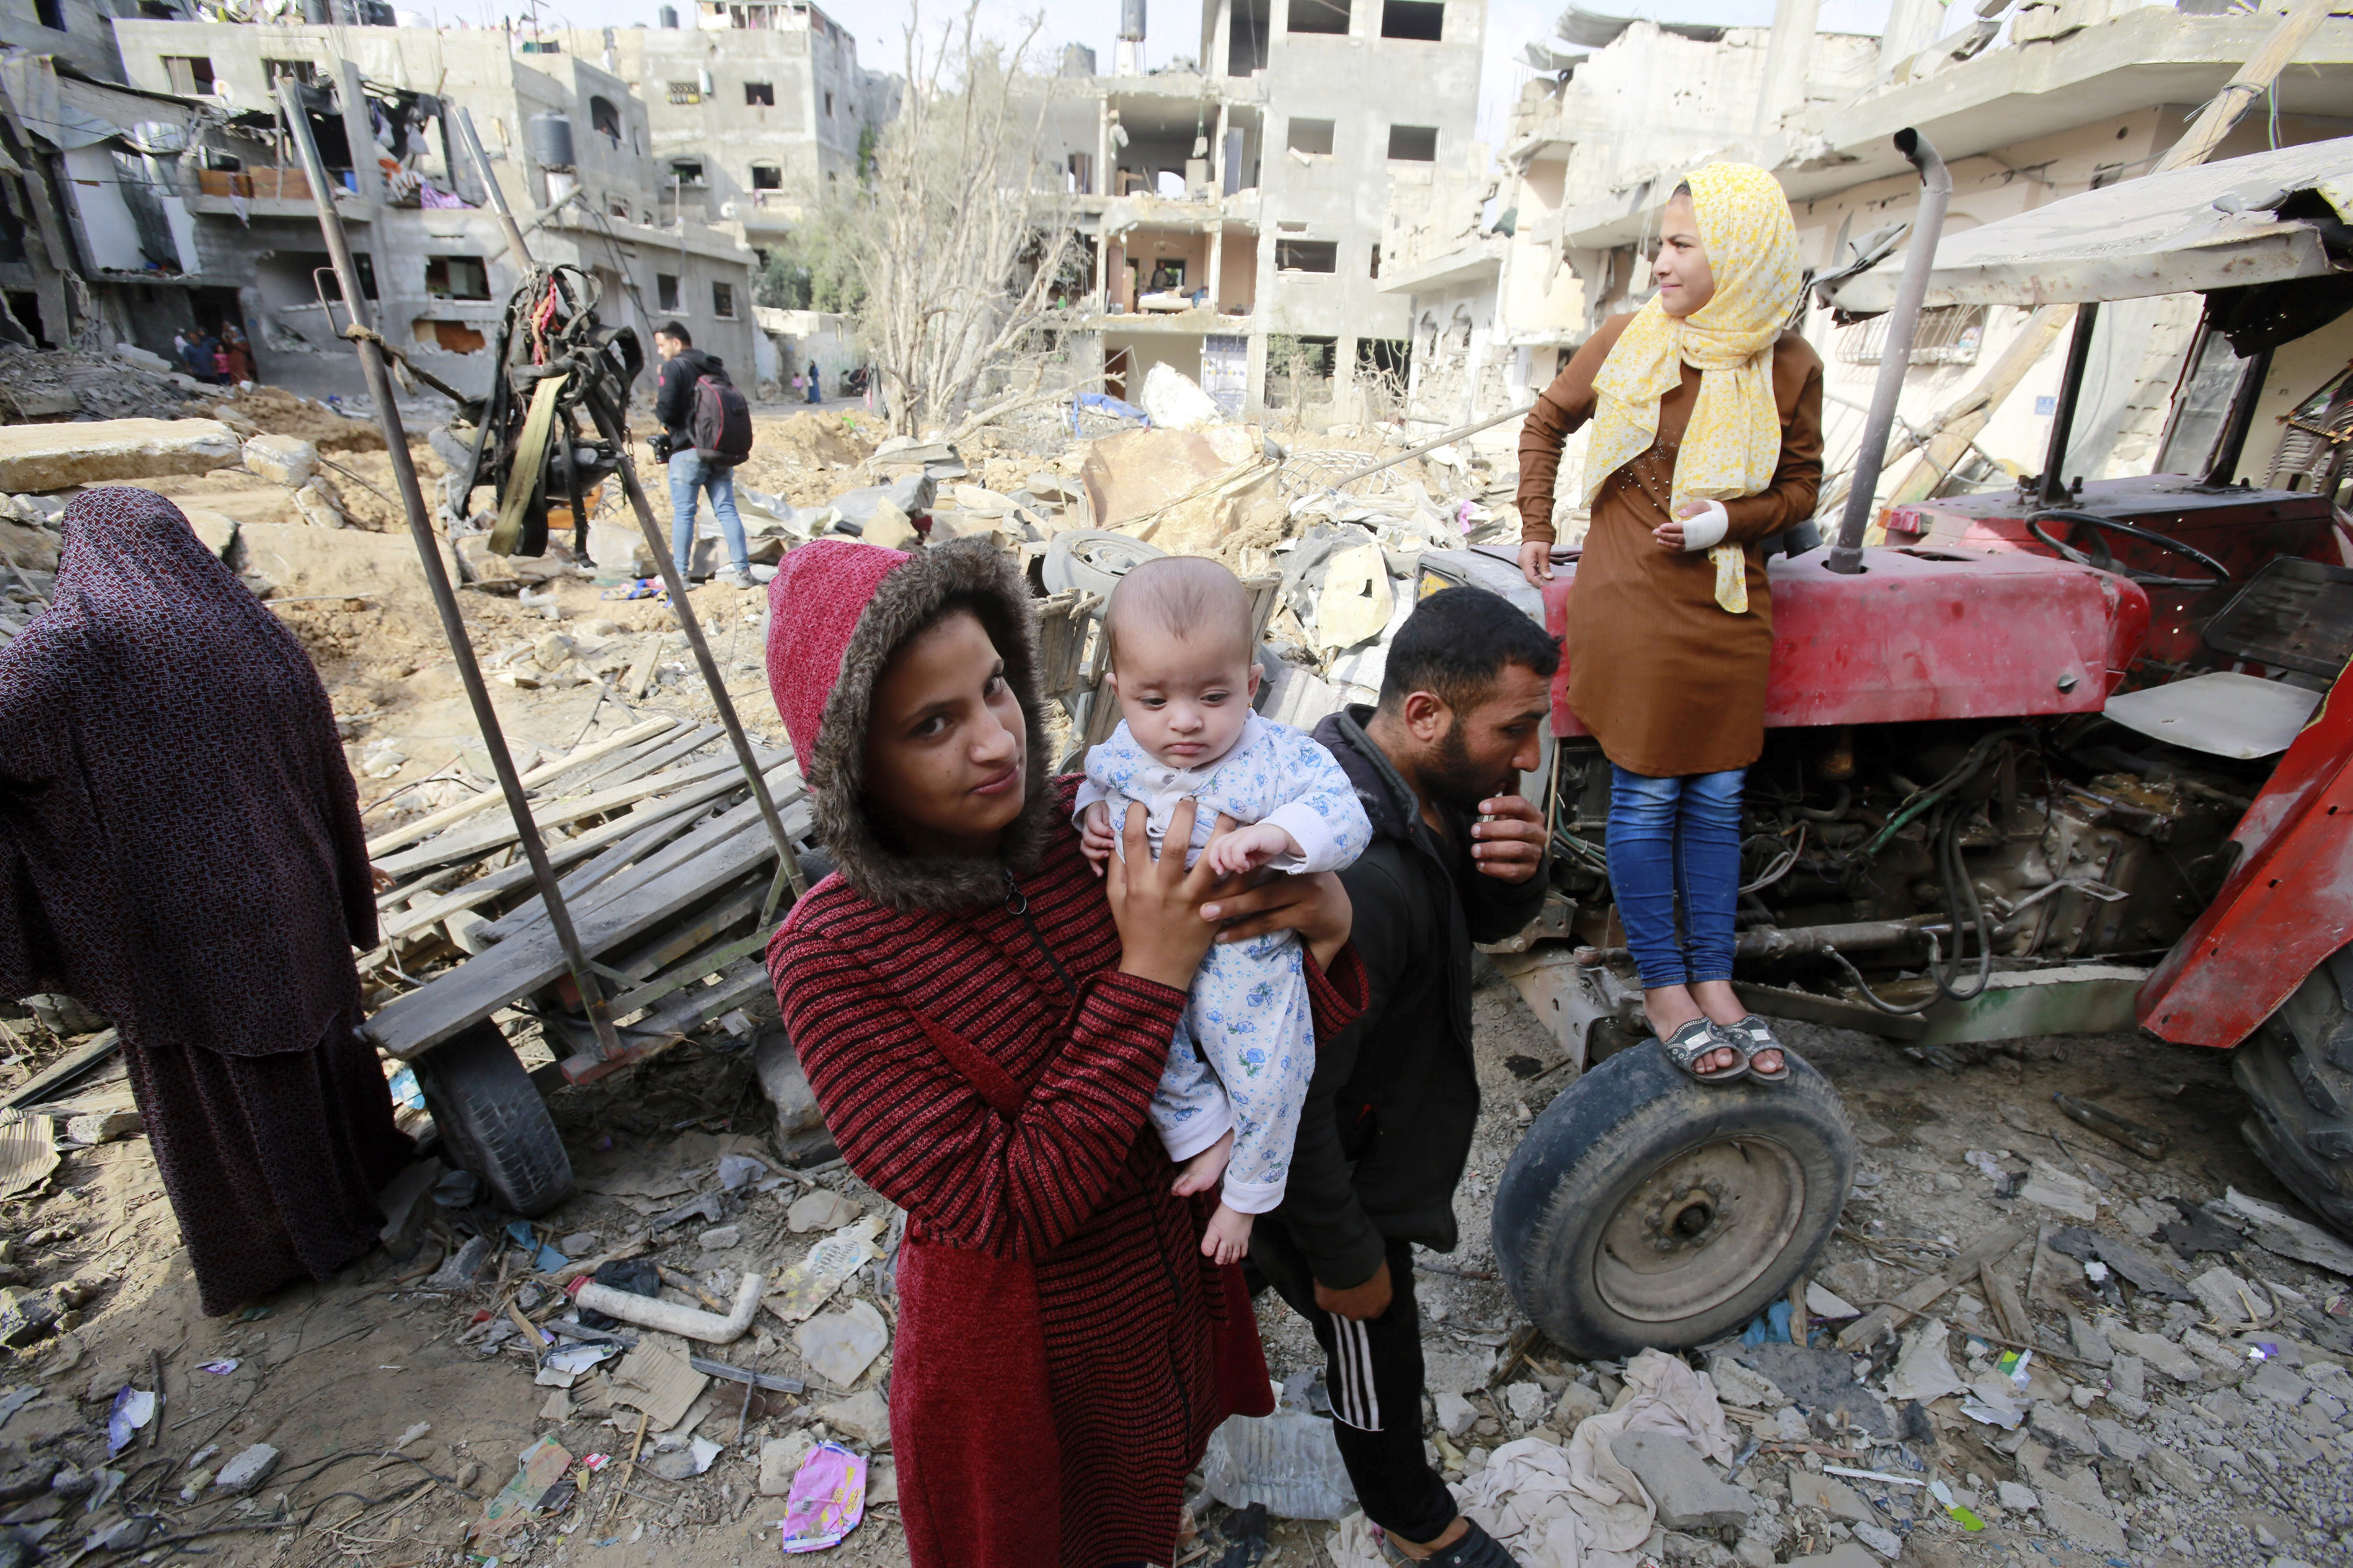 Palestinian family who have returned to their neighborhood, stare at the damages from their home, hit by Israeli bombardment in Gaza City—21 May 2021. (Photo by Ahmed Zakot / SOPA Images/Sipa USA)(Sipa via AP Images).